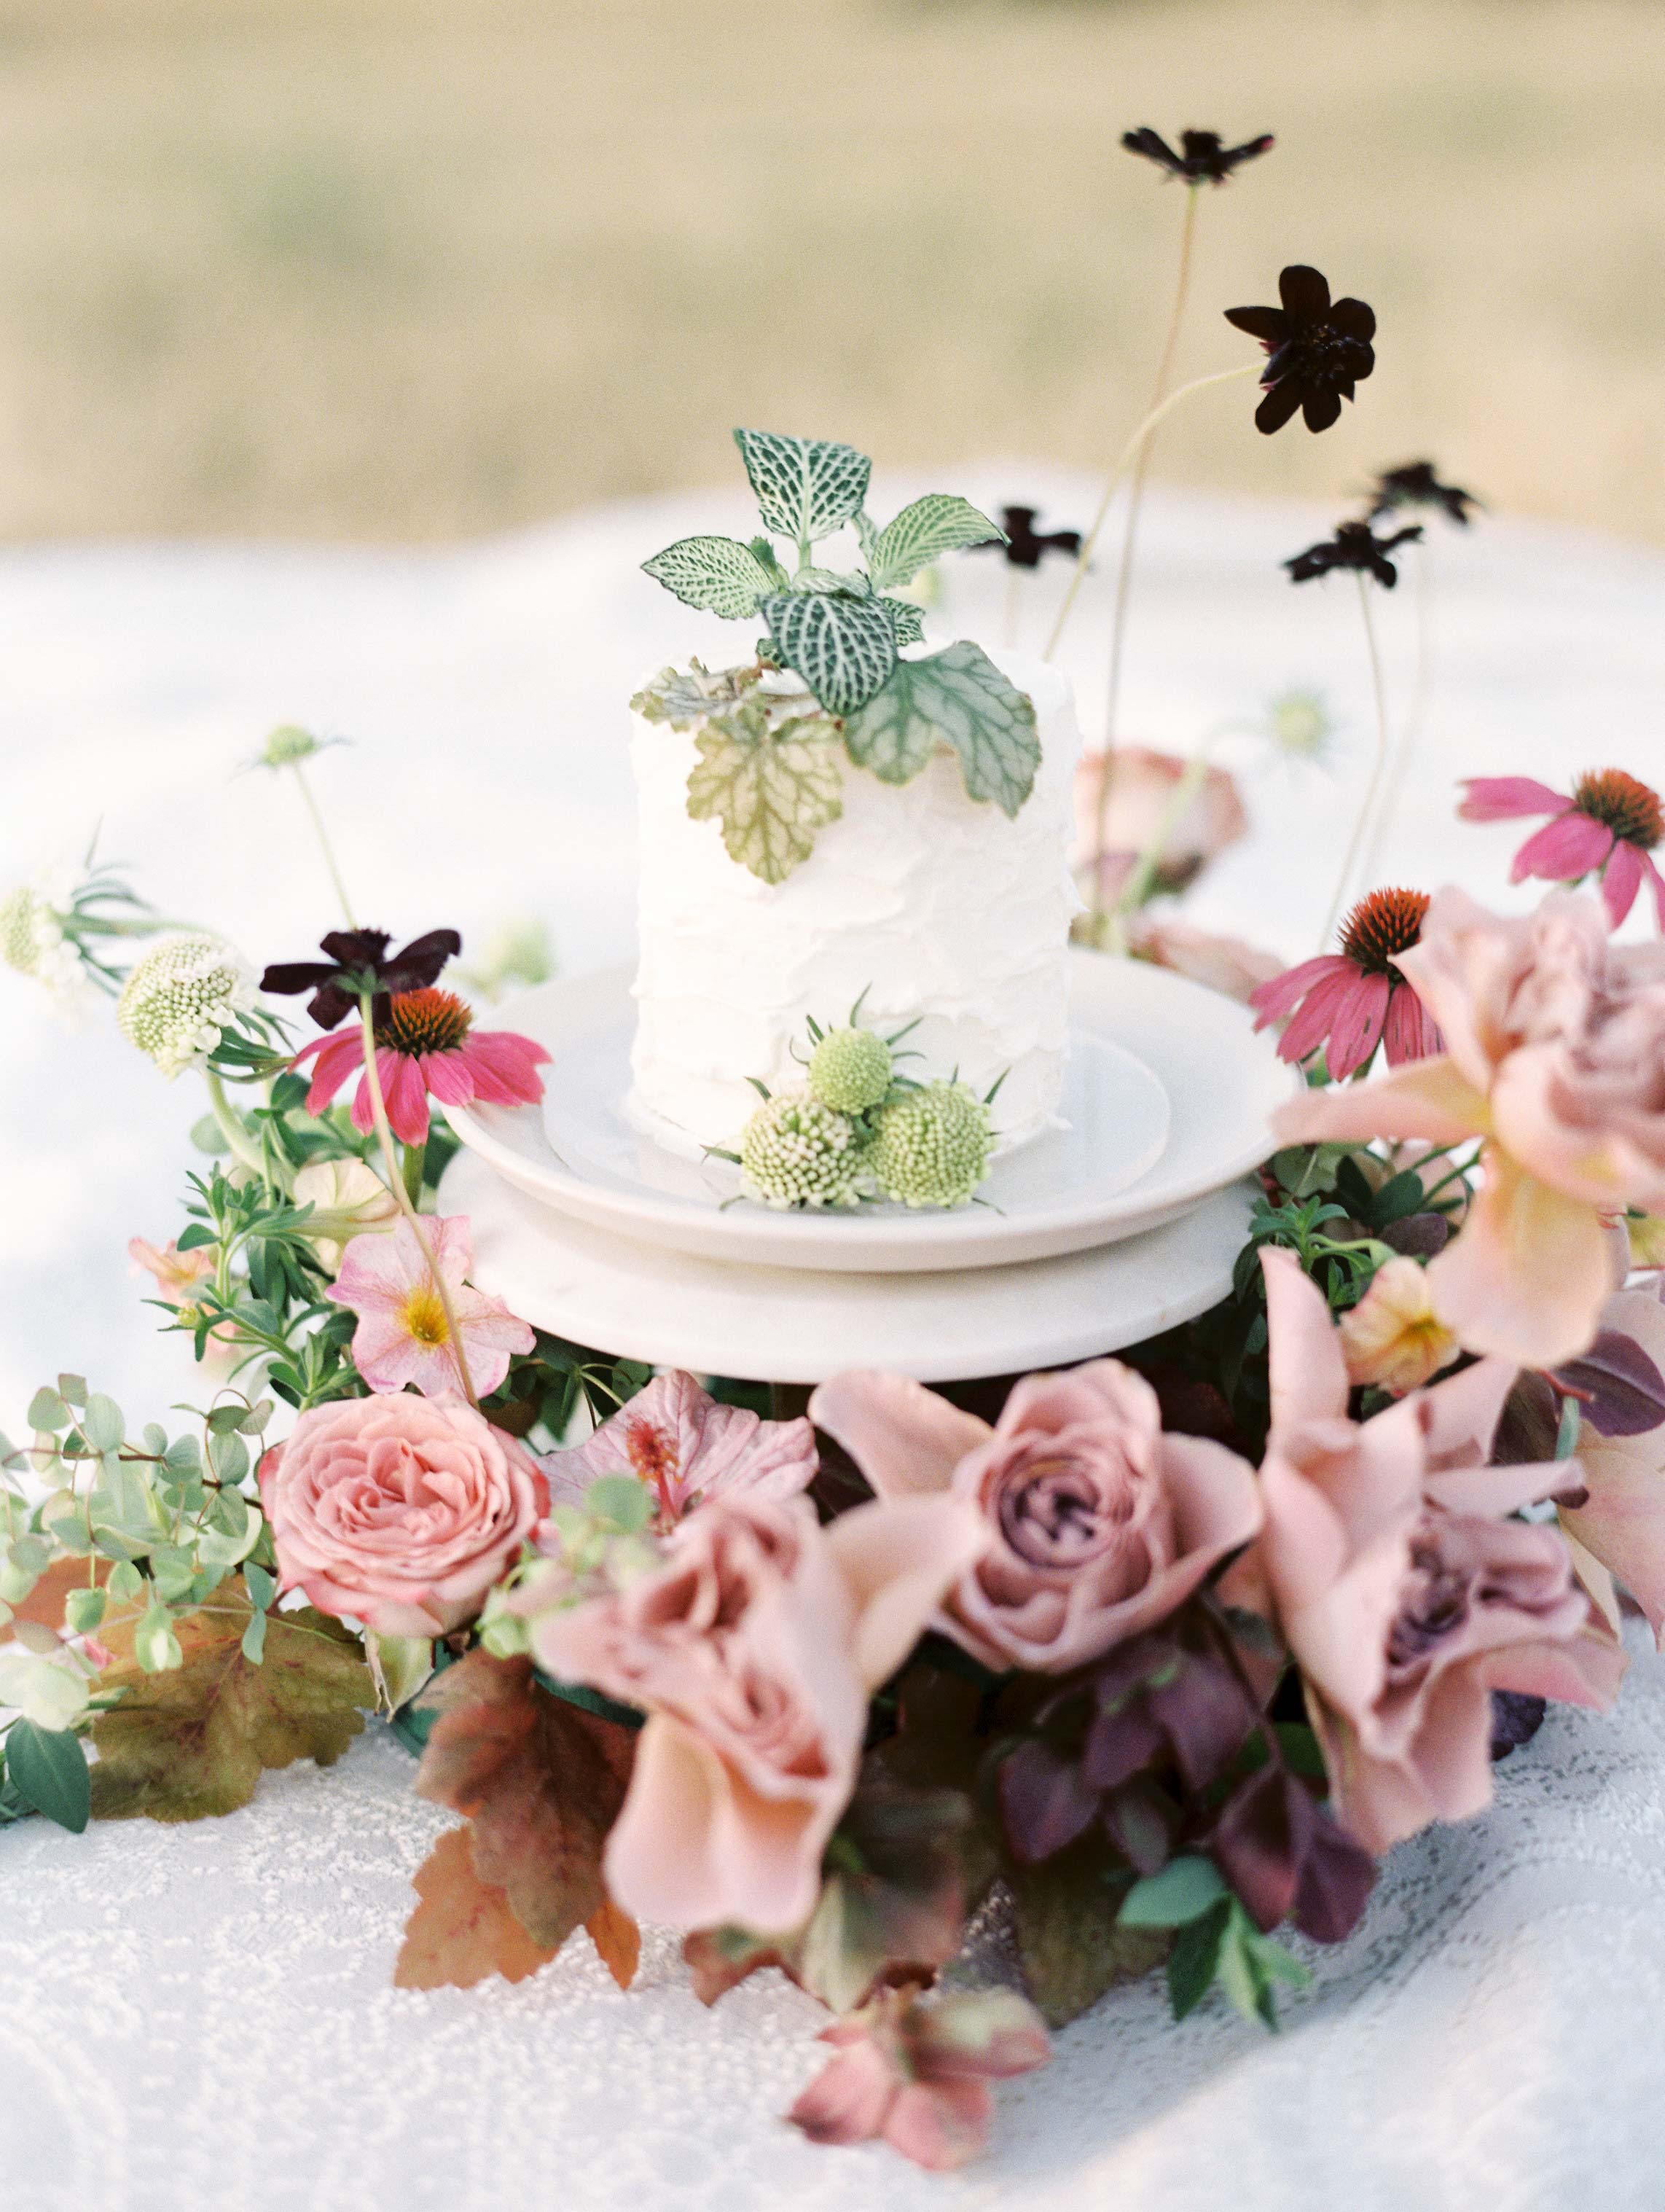 26 Single-Serving Wedding Cakes That Are Beyond Adorable